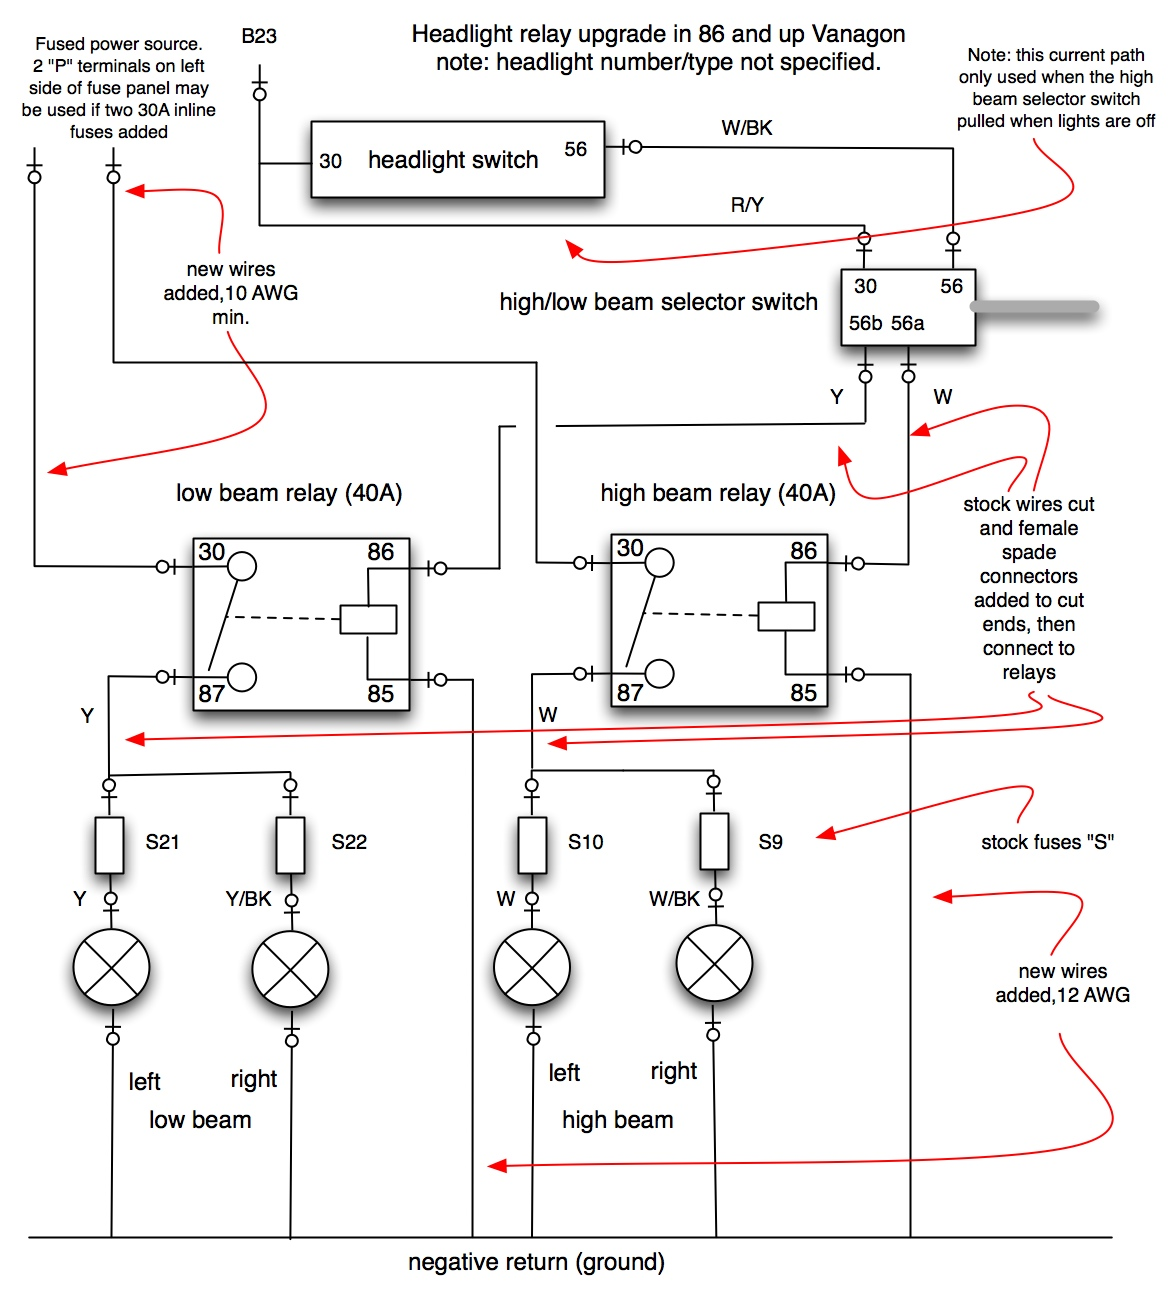 Headlight Wiring Diagram : Headlight relay wiring free engine image for